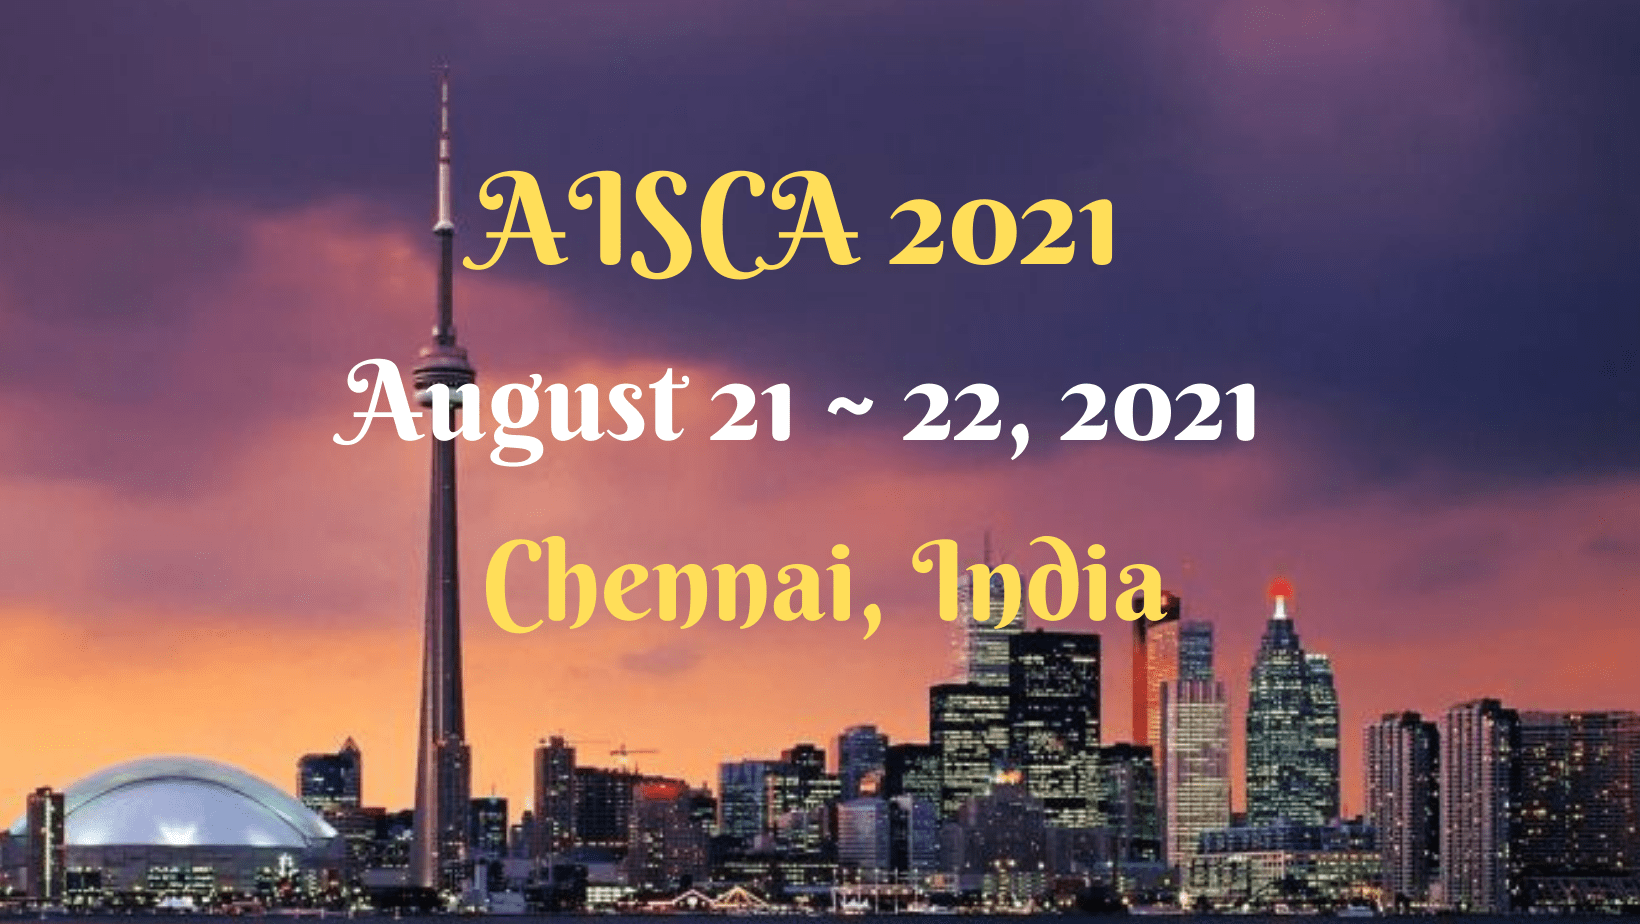 5th International Conference on Artificial Intelligence, Soft Computing and Applications (AISCA 2021)